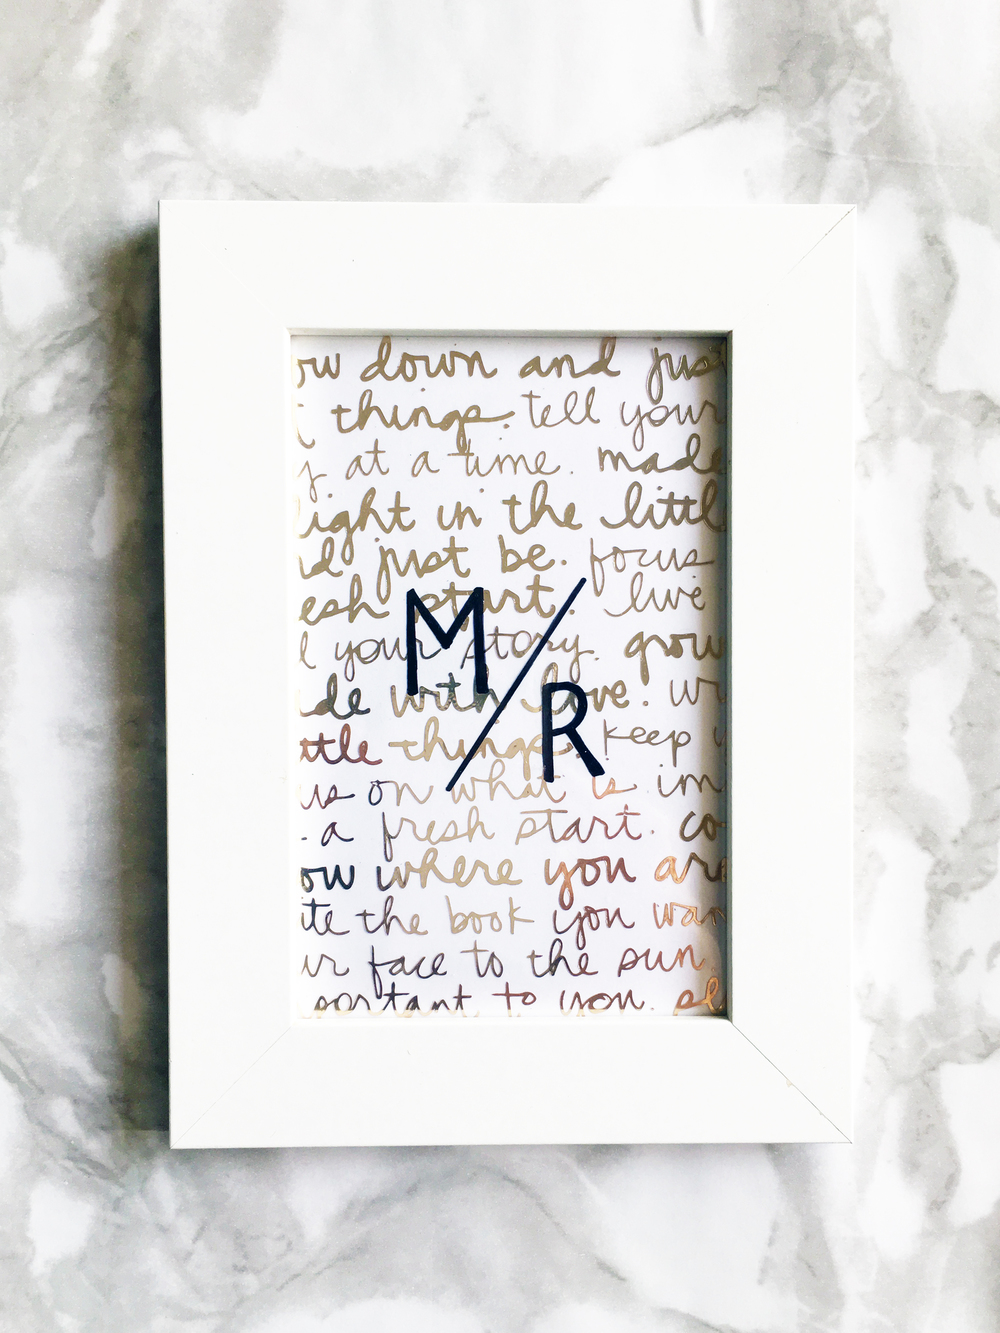 drawn-to-diy-framed-initials-02